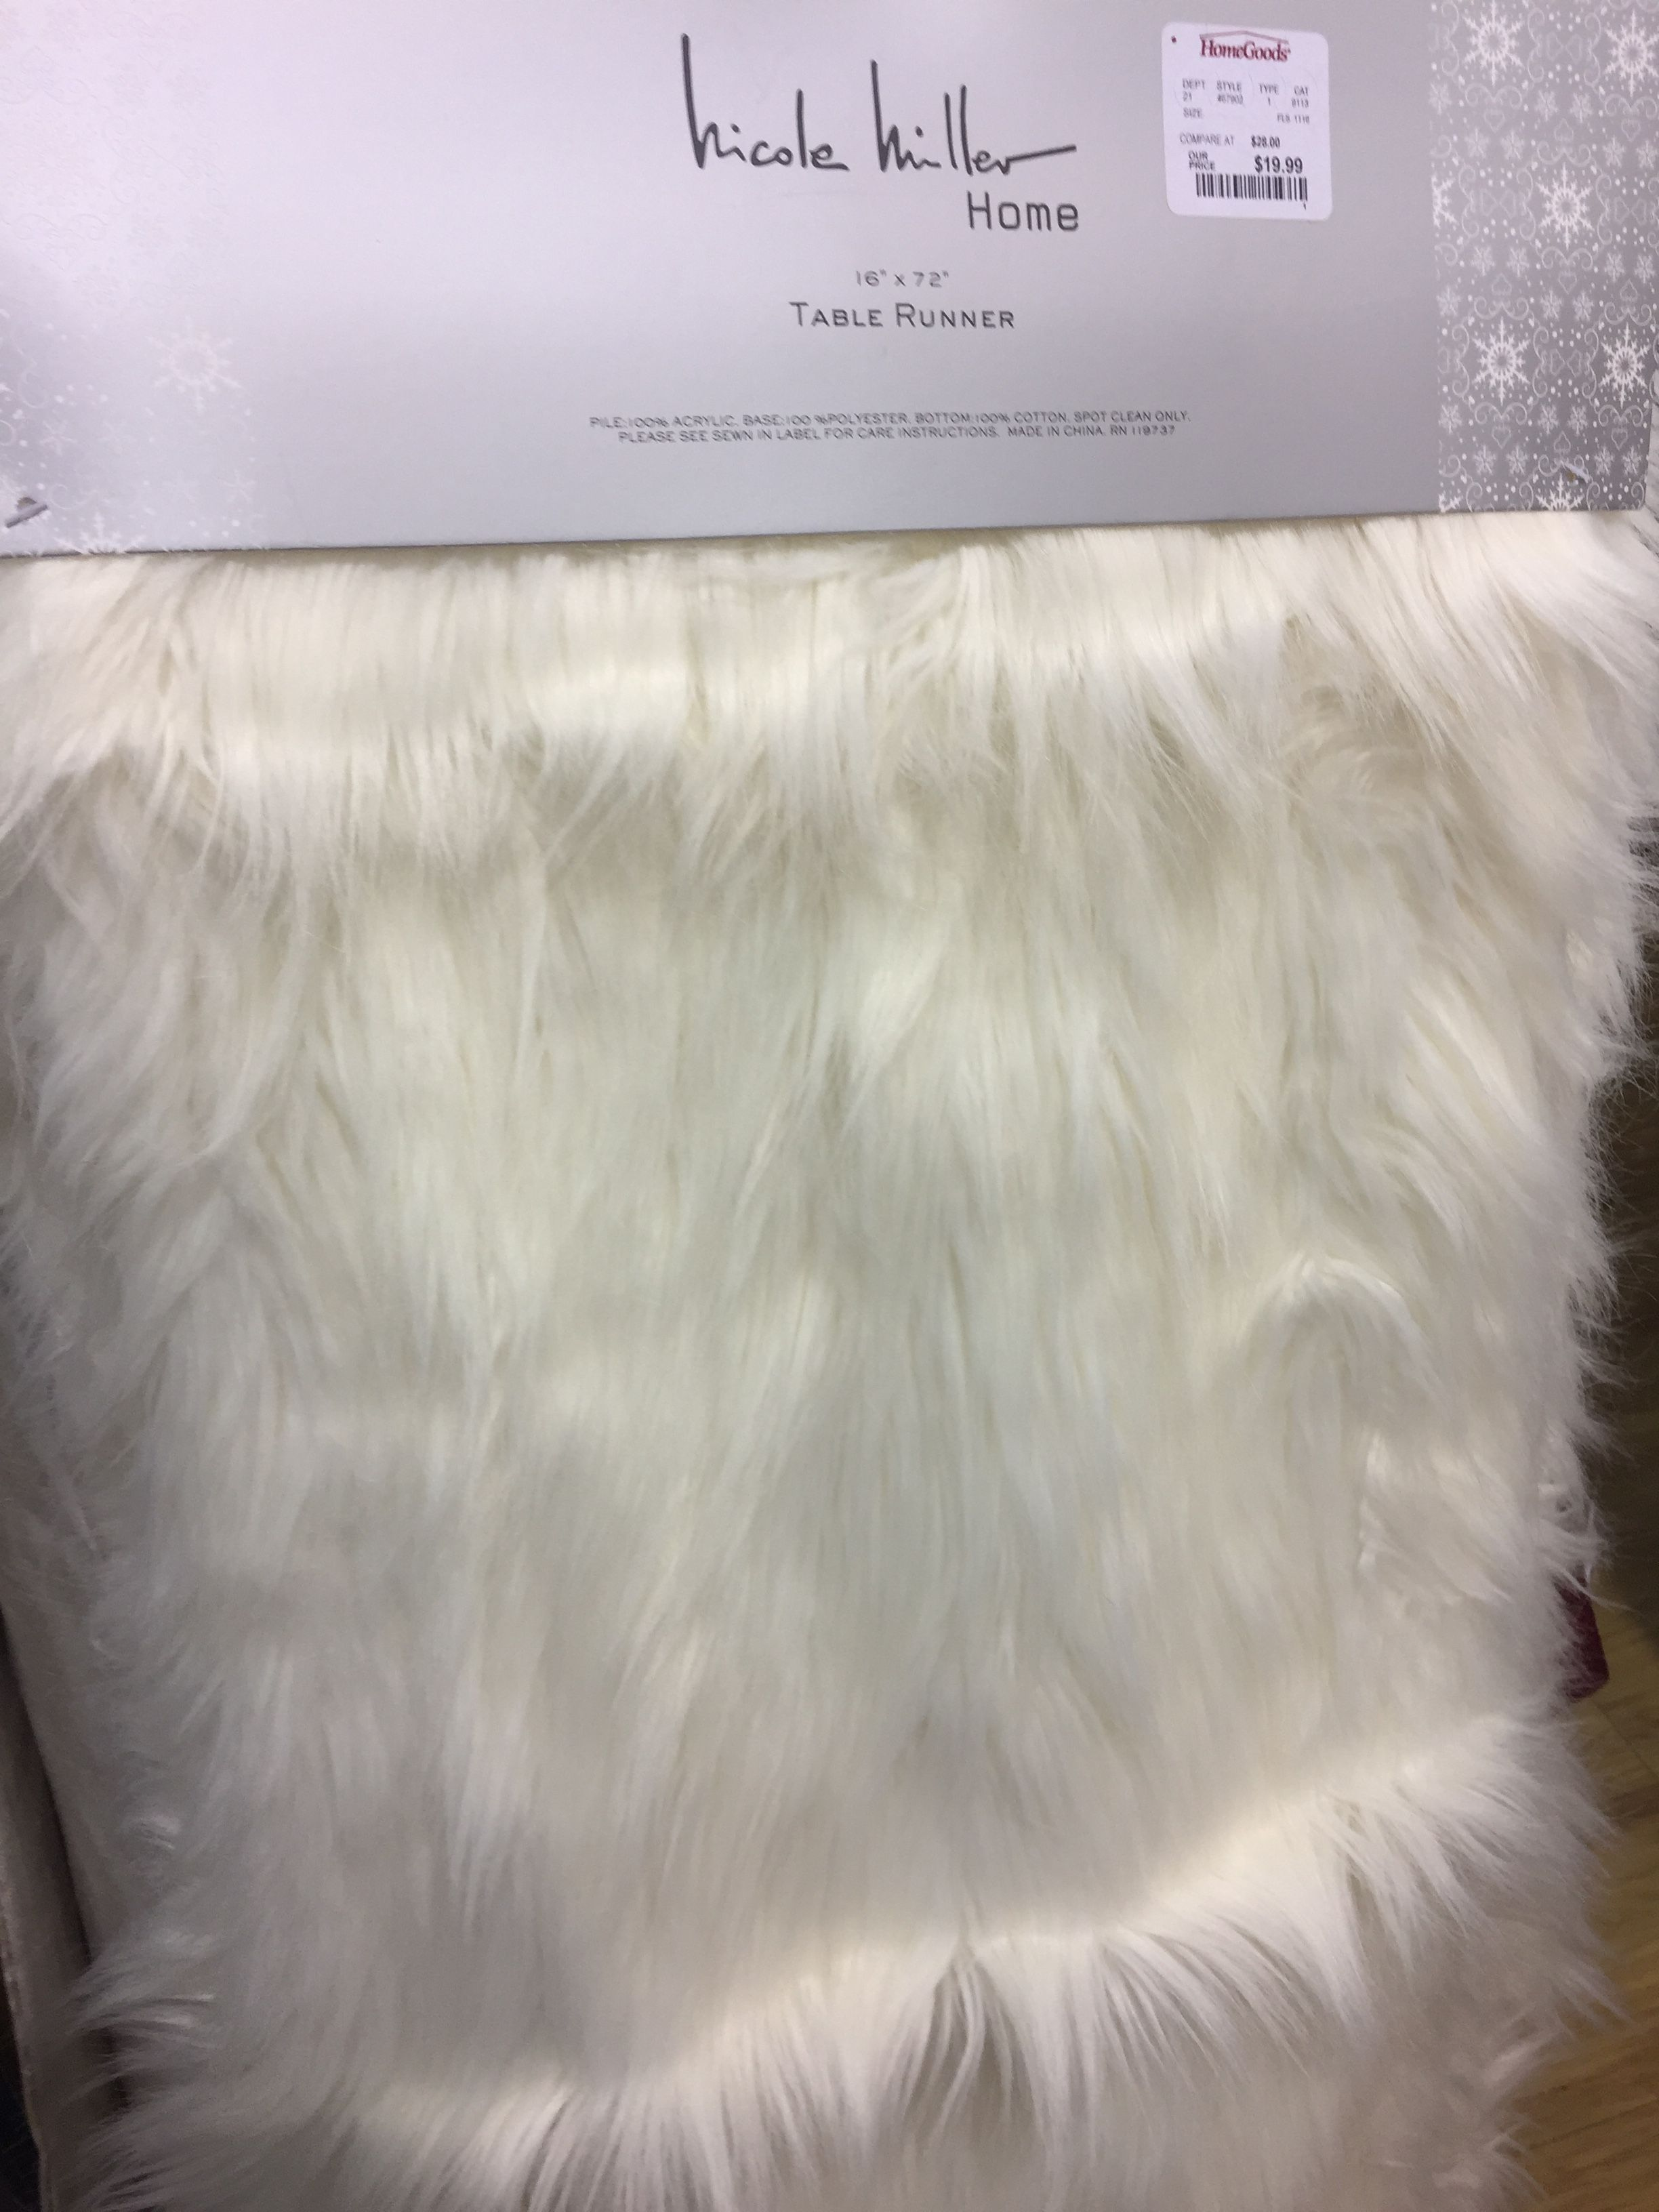 Faux Fur Table Runner For Half The Price At Pier 1